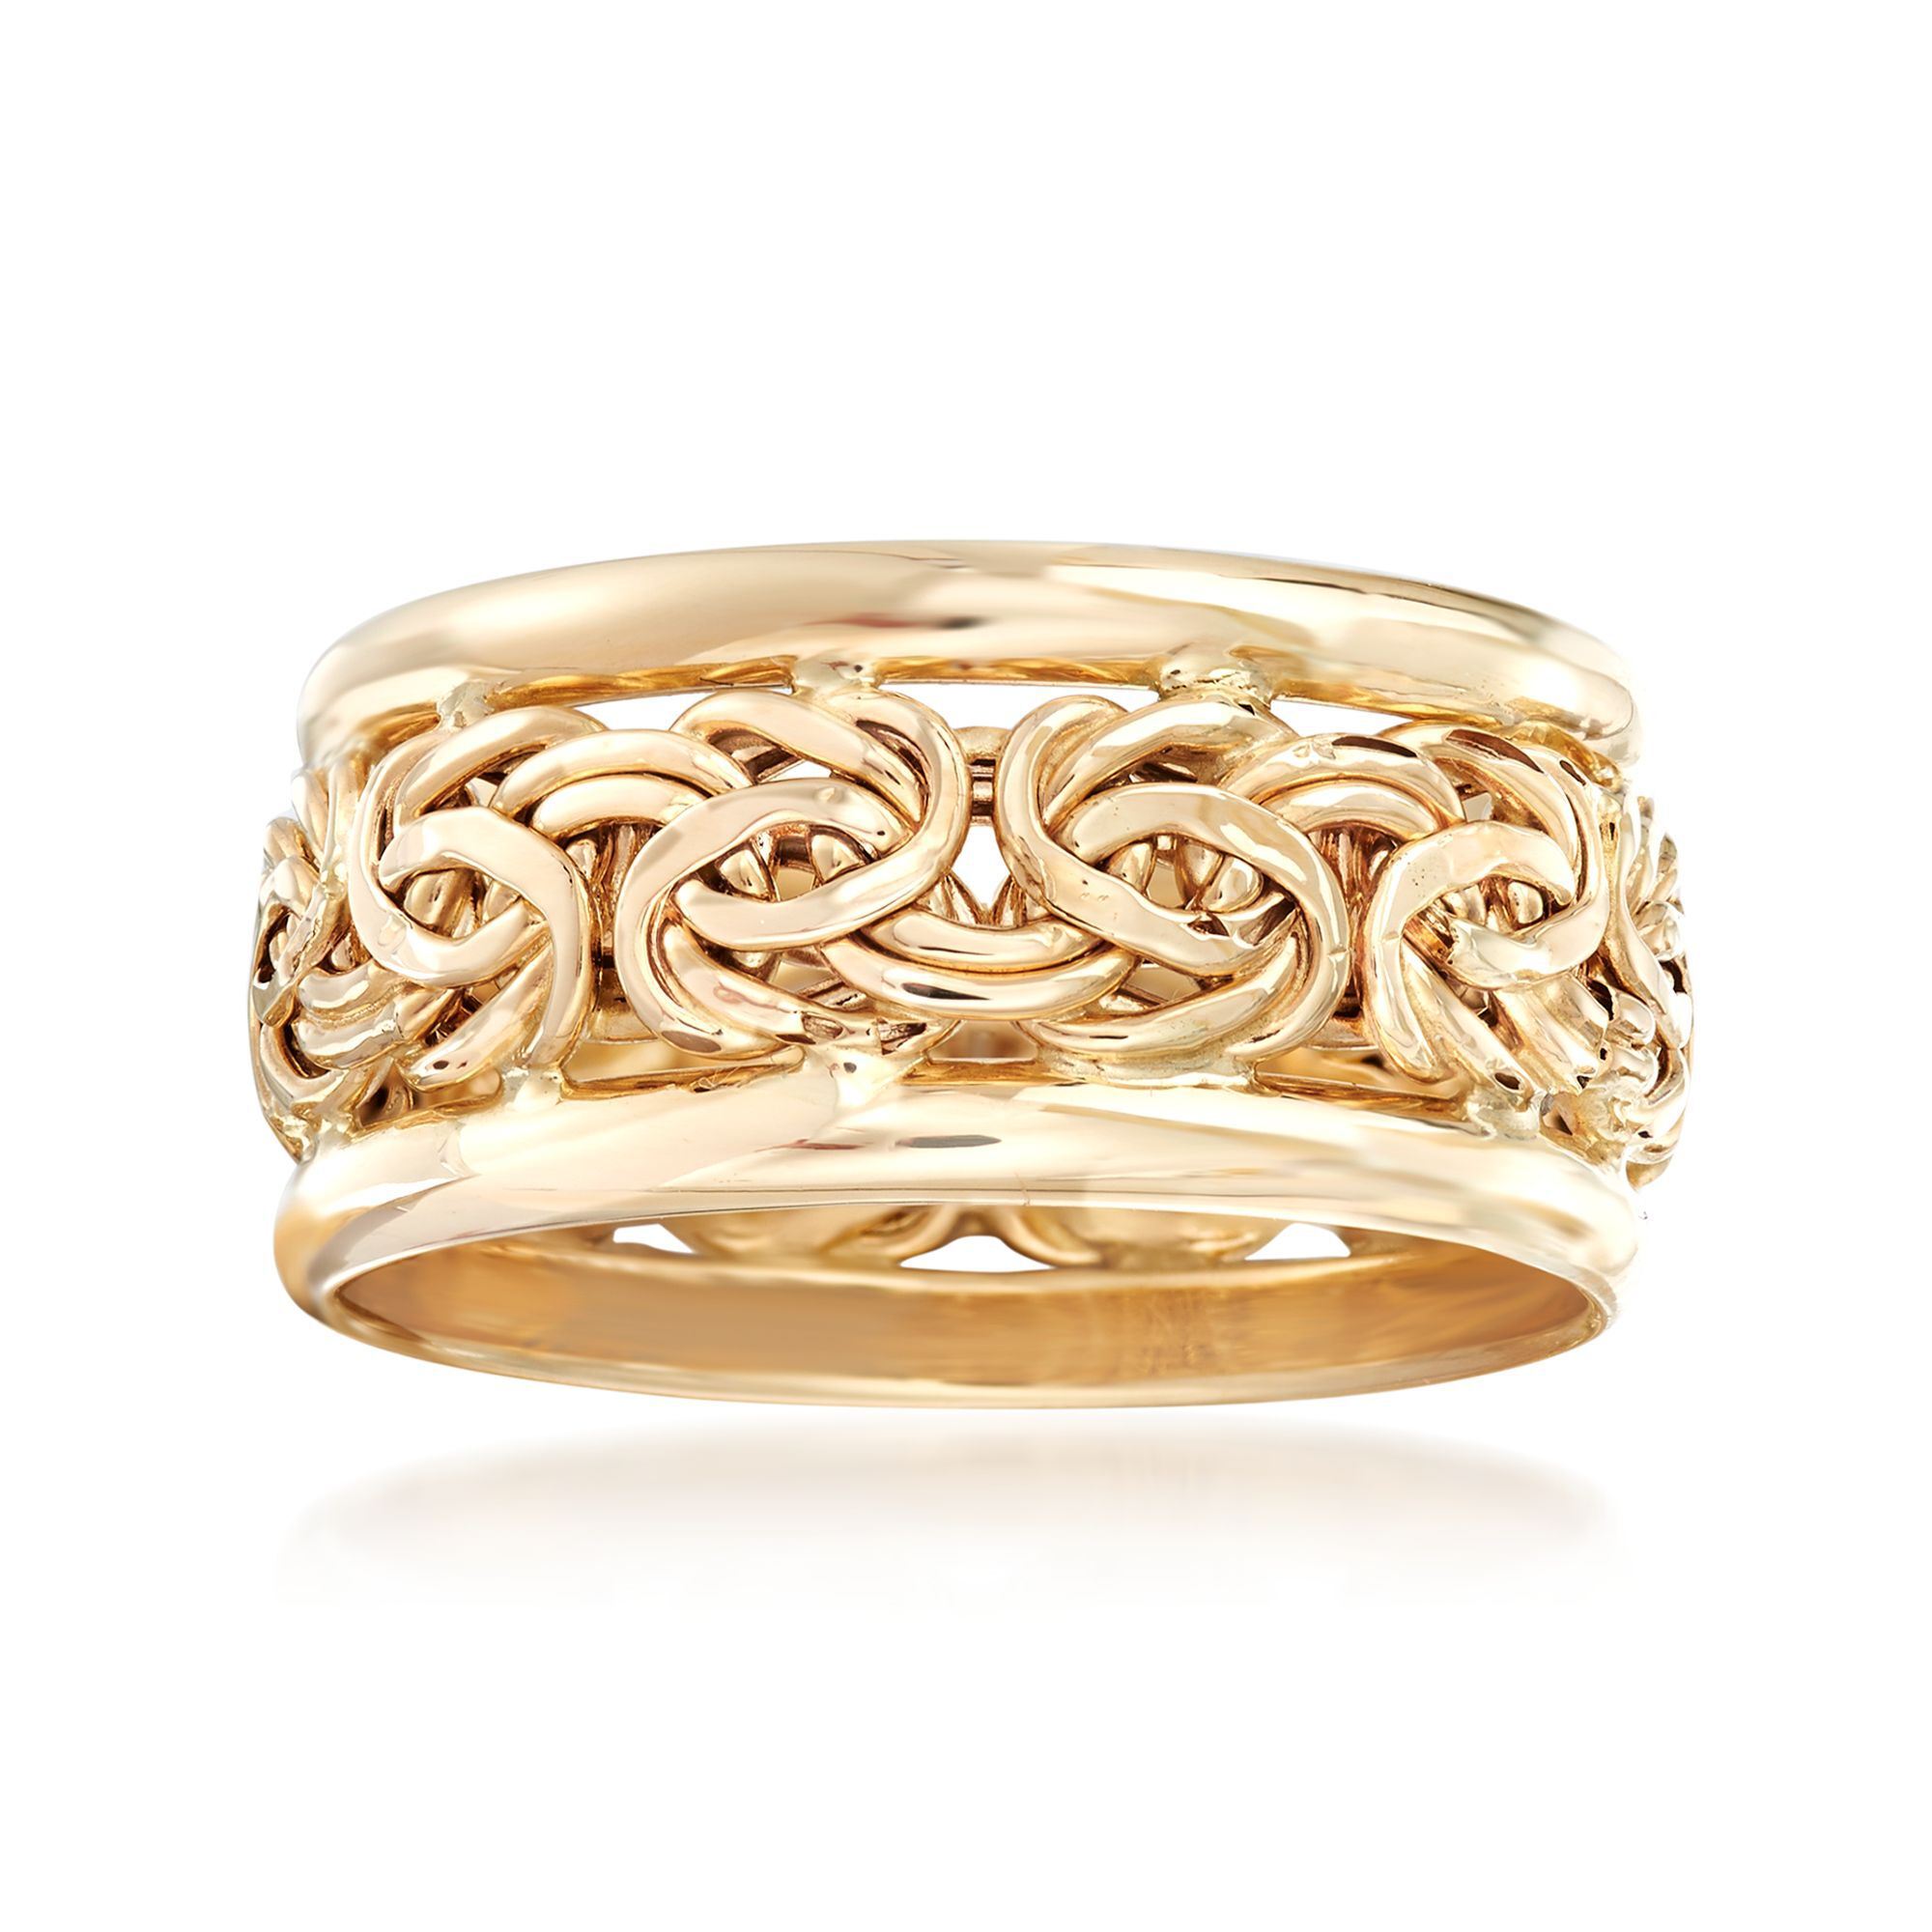 Stainless Steel 2 Color Affirmation-Love Criss-Cross Interlocking Celtic Wedding Band Ring